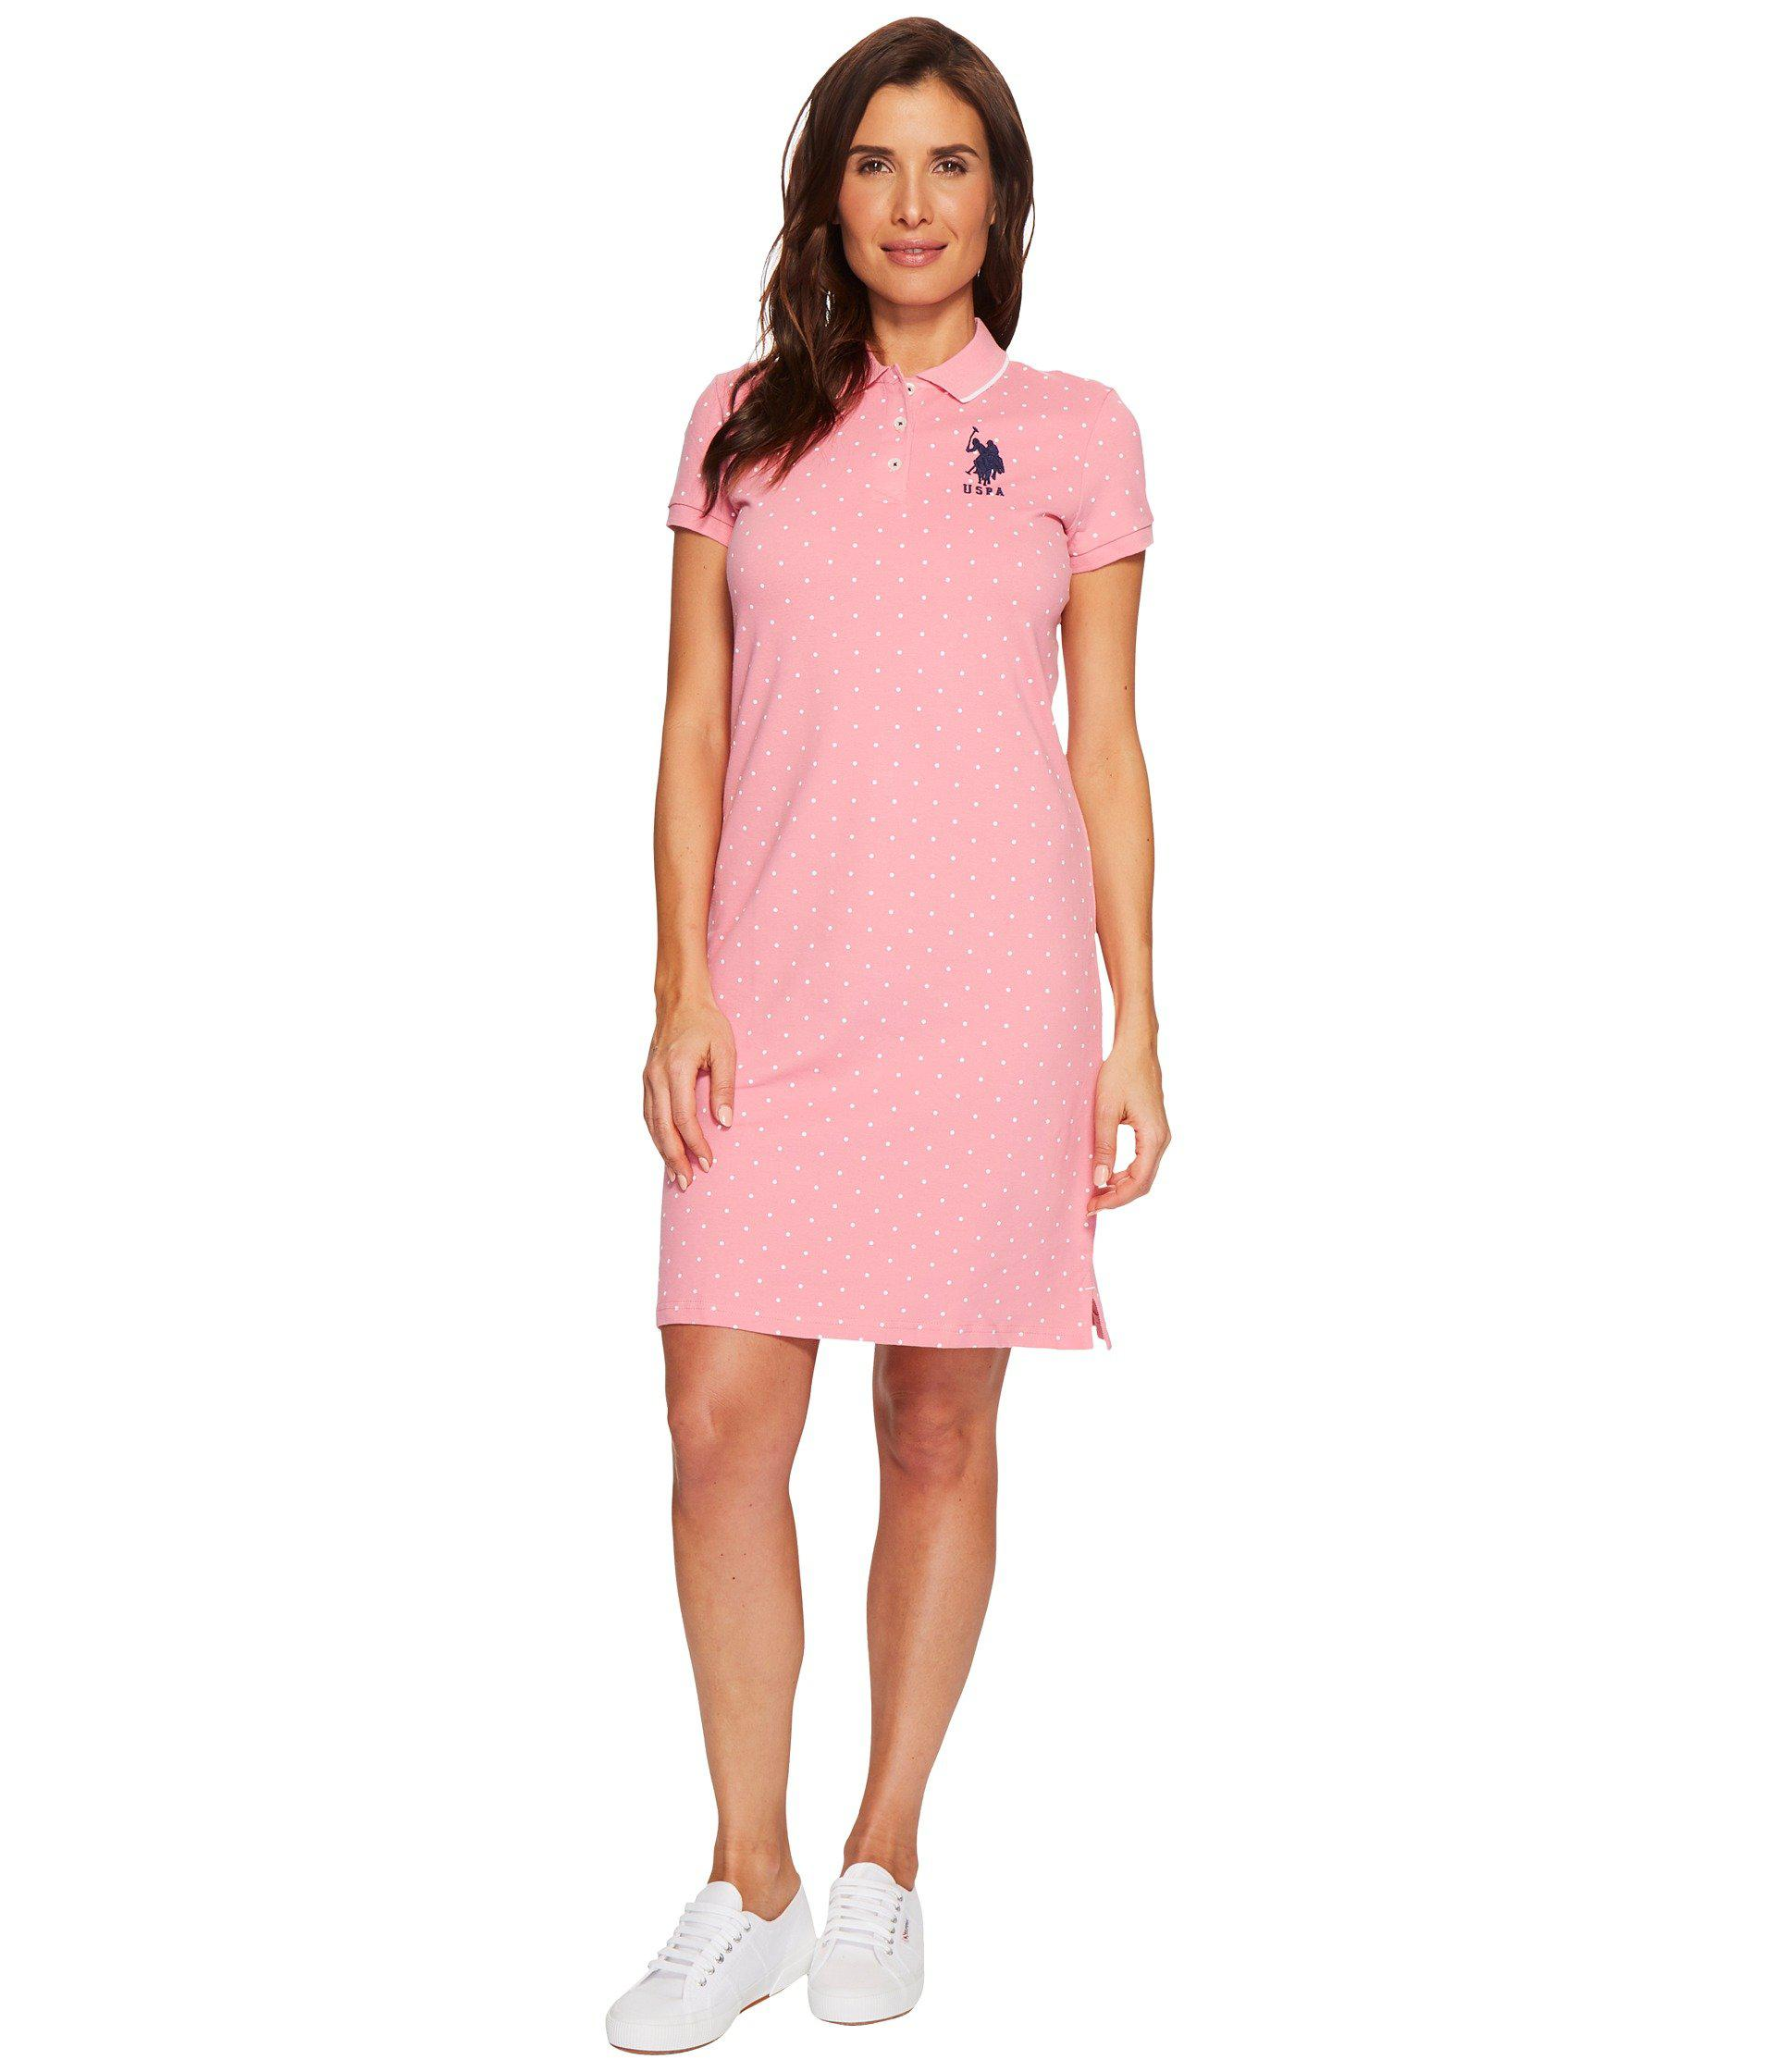 69a66765eb01 Lyst - U.S. POLO ASSN. Stretch Pique Printed Polo Dress in Pink